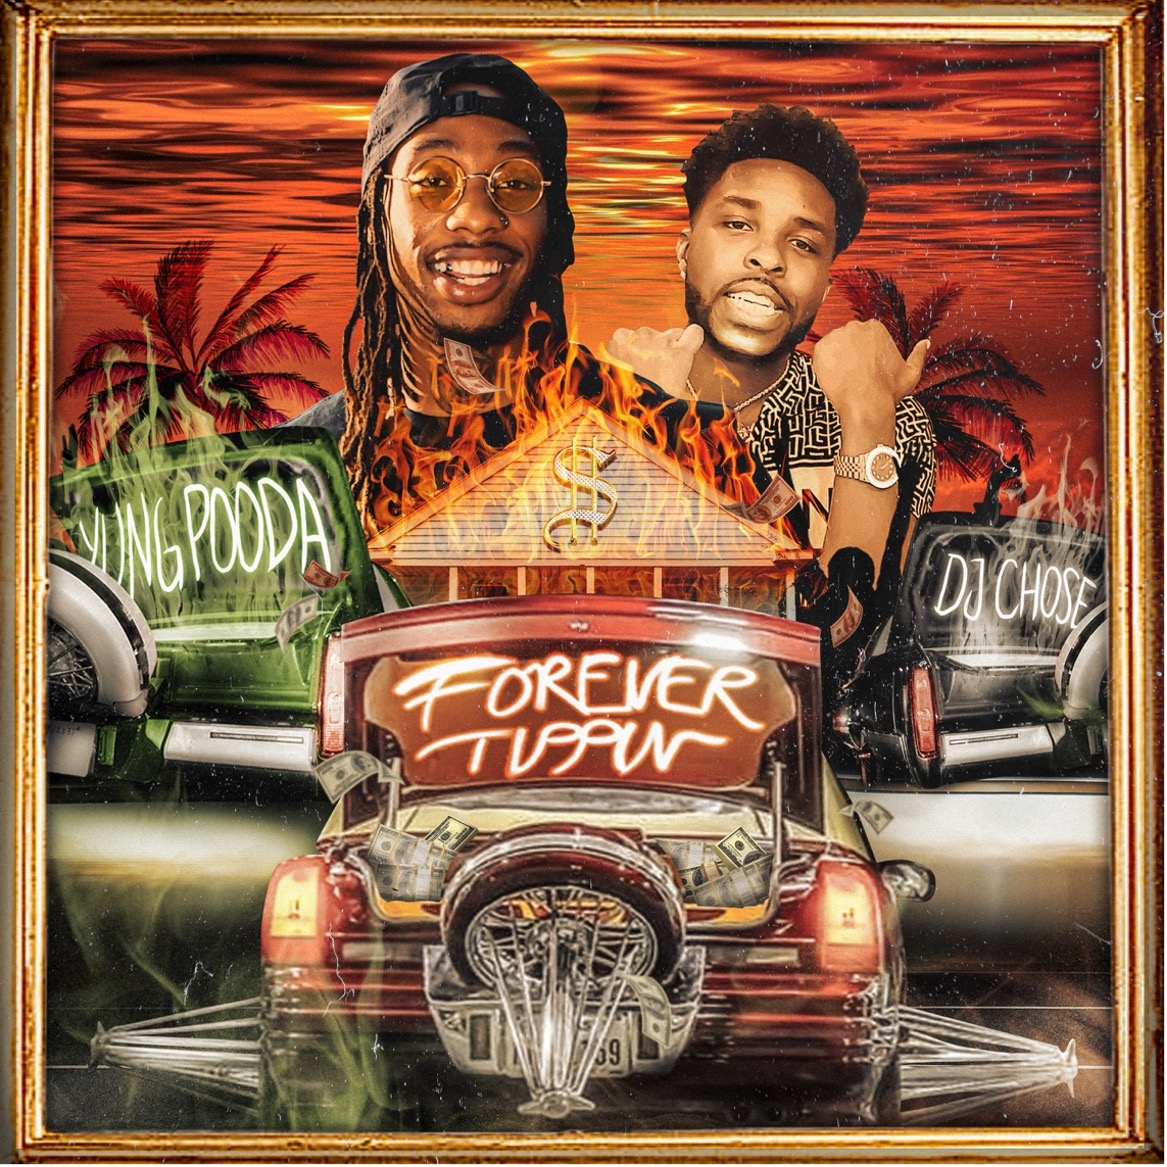 Yung Pooda Pays Homage To Houston Culture in Forever Tippin Featuring DJ Chose